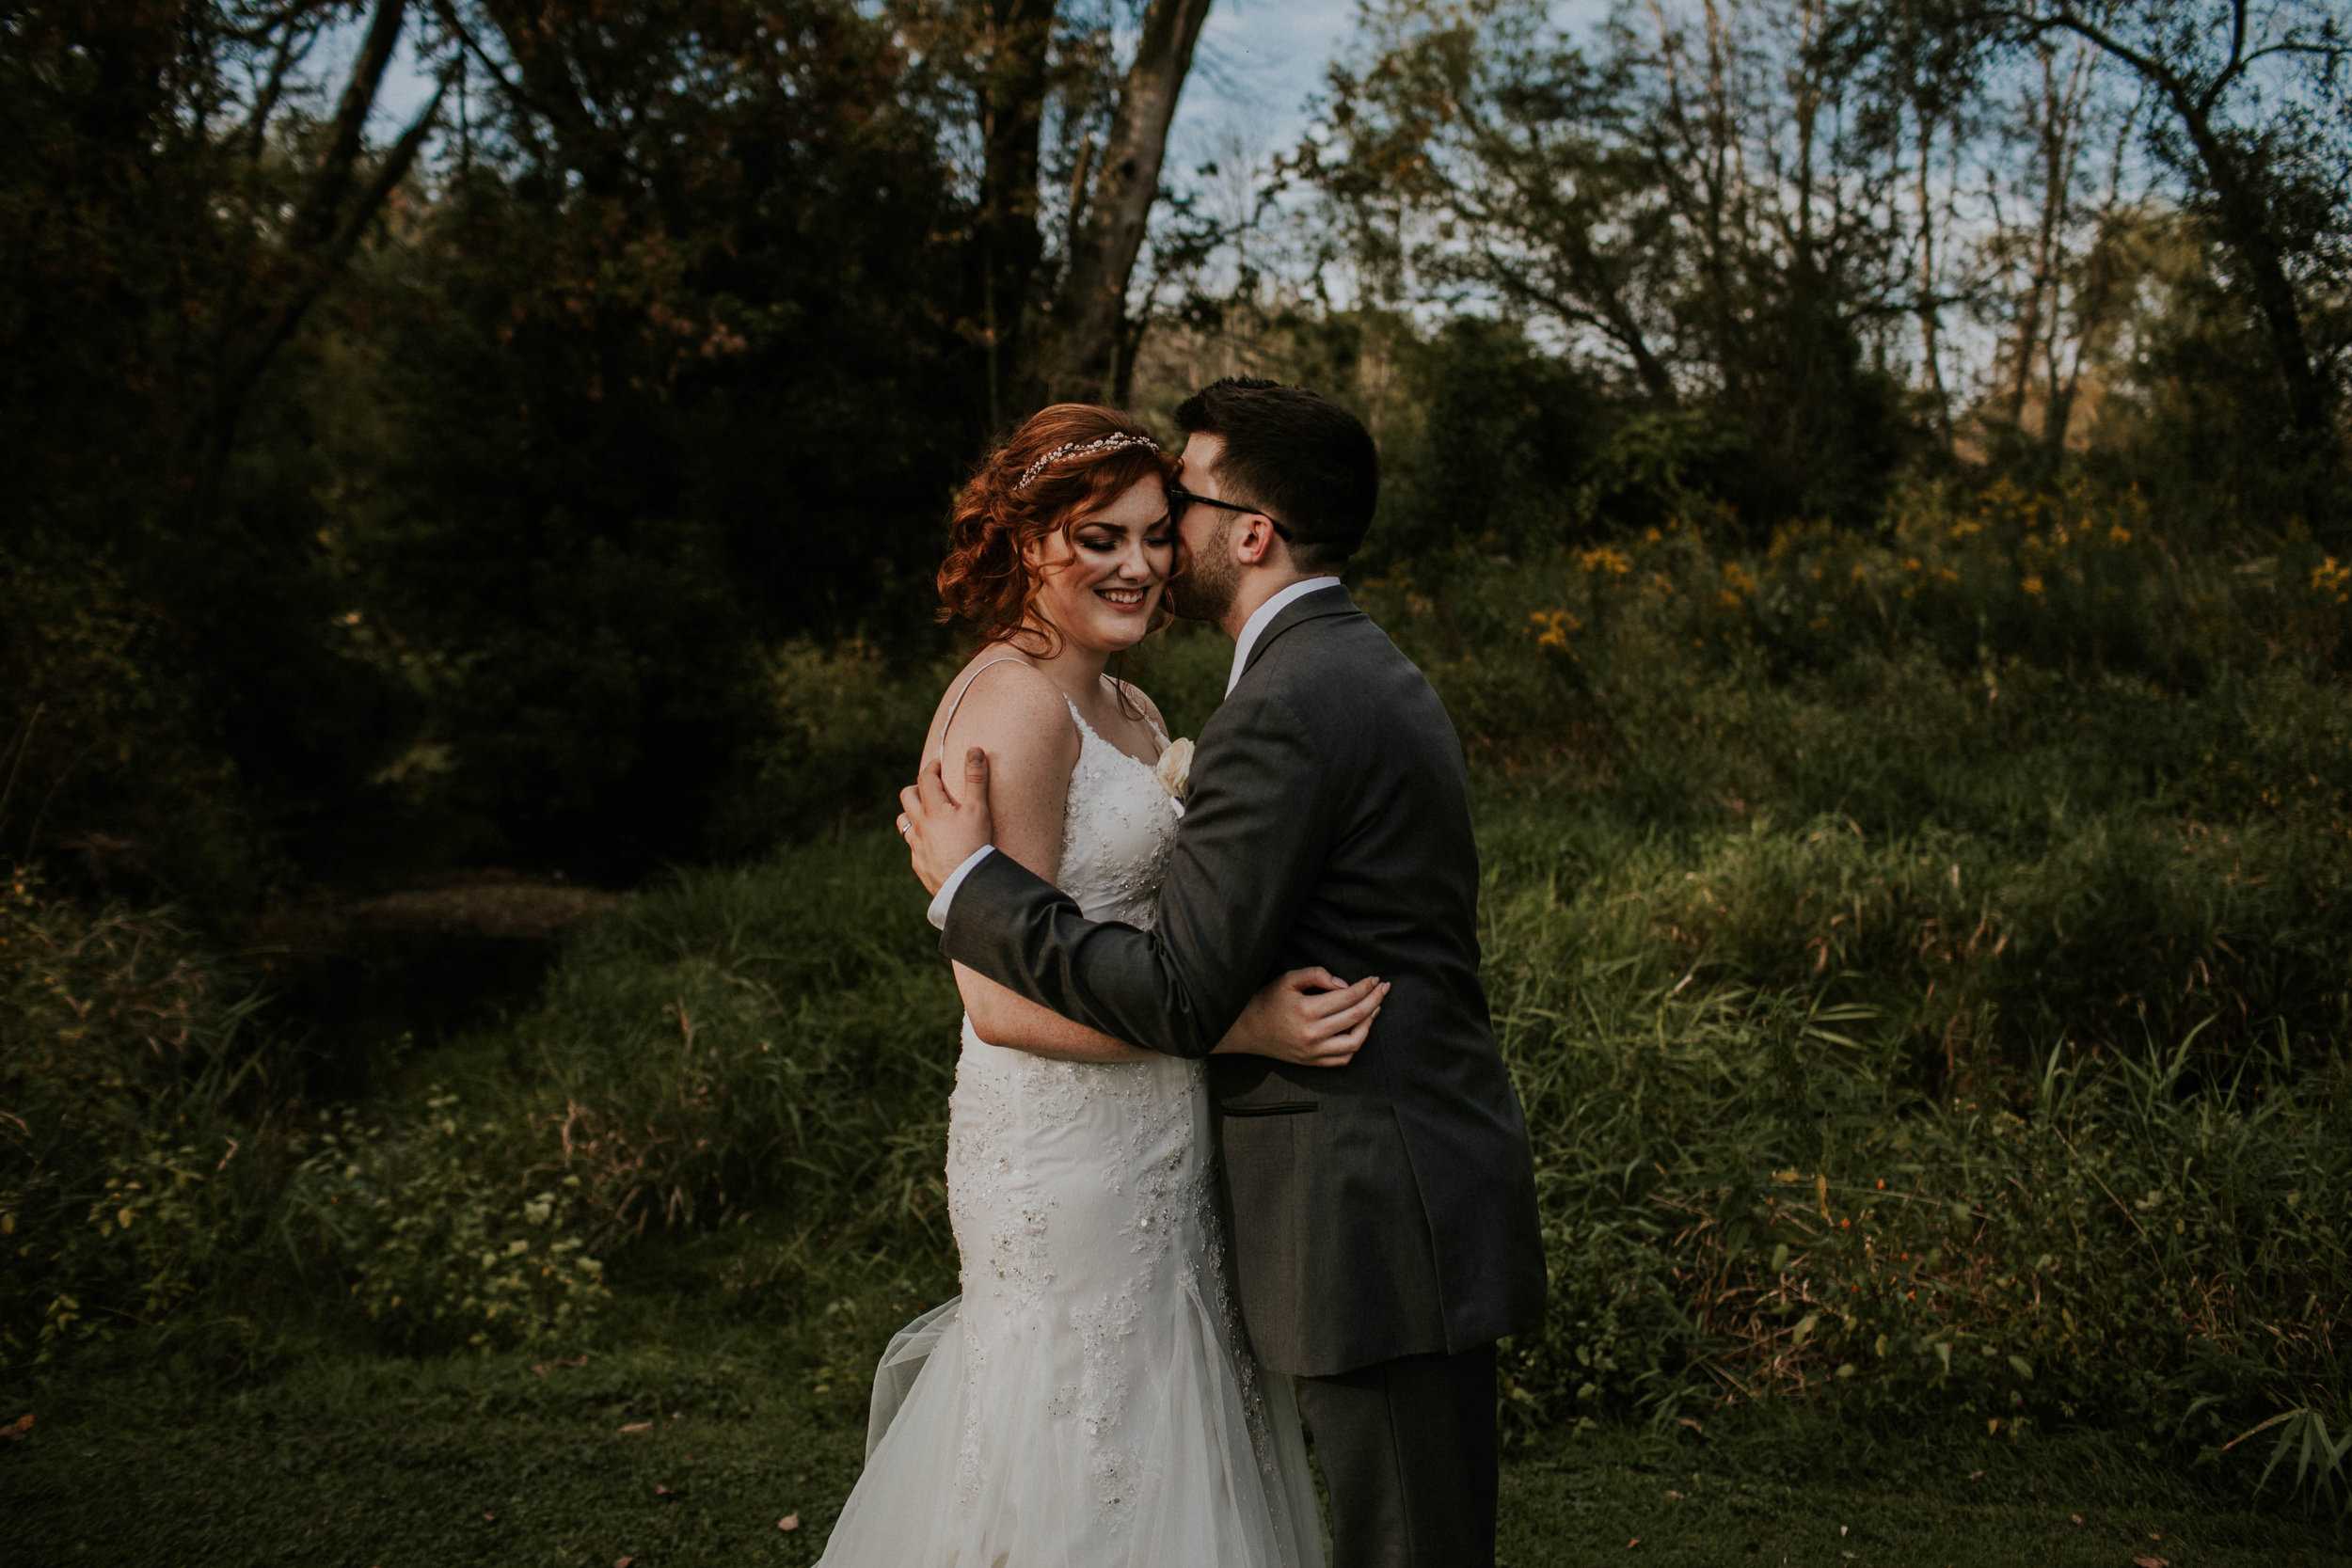 Waters edge louisville ohio romantic wedding grace e jones photography130.jpg